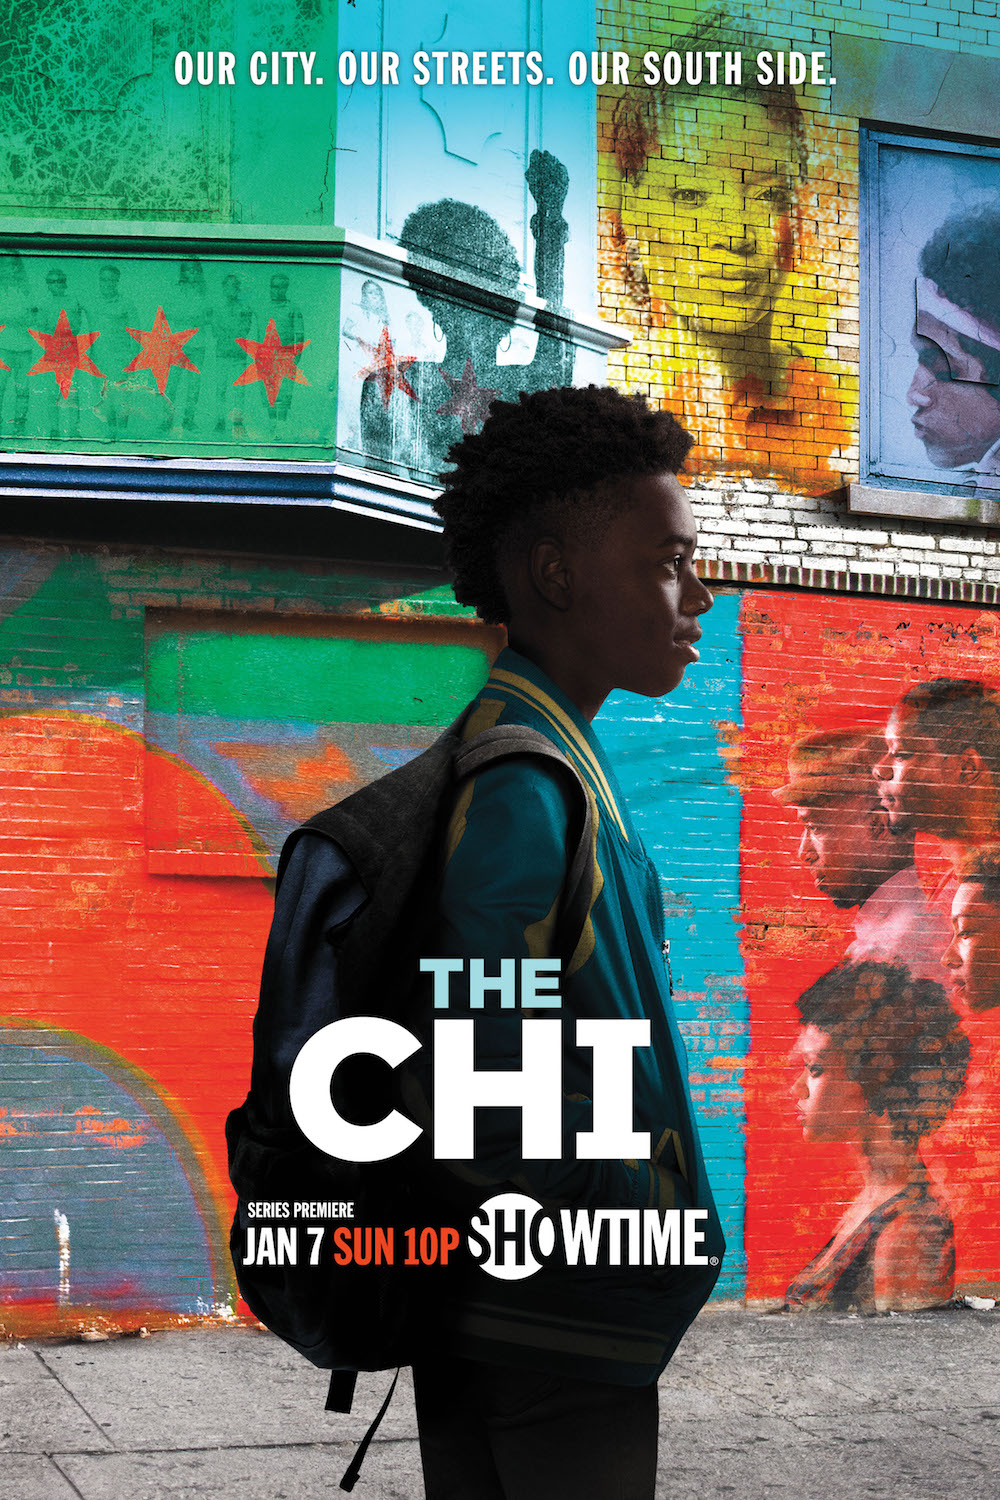 The Chi Season 1 Poster Showtime